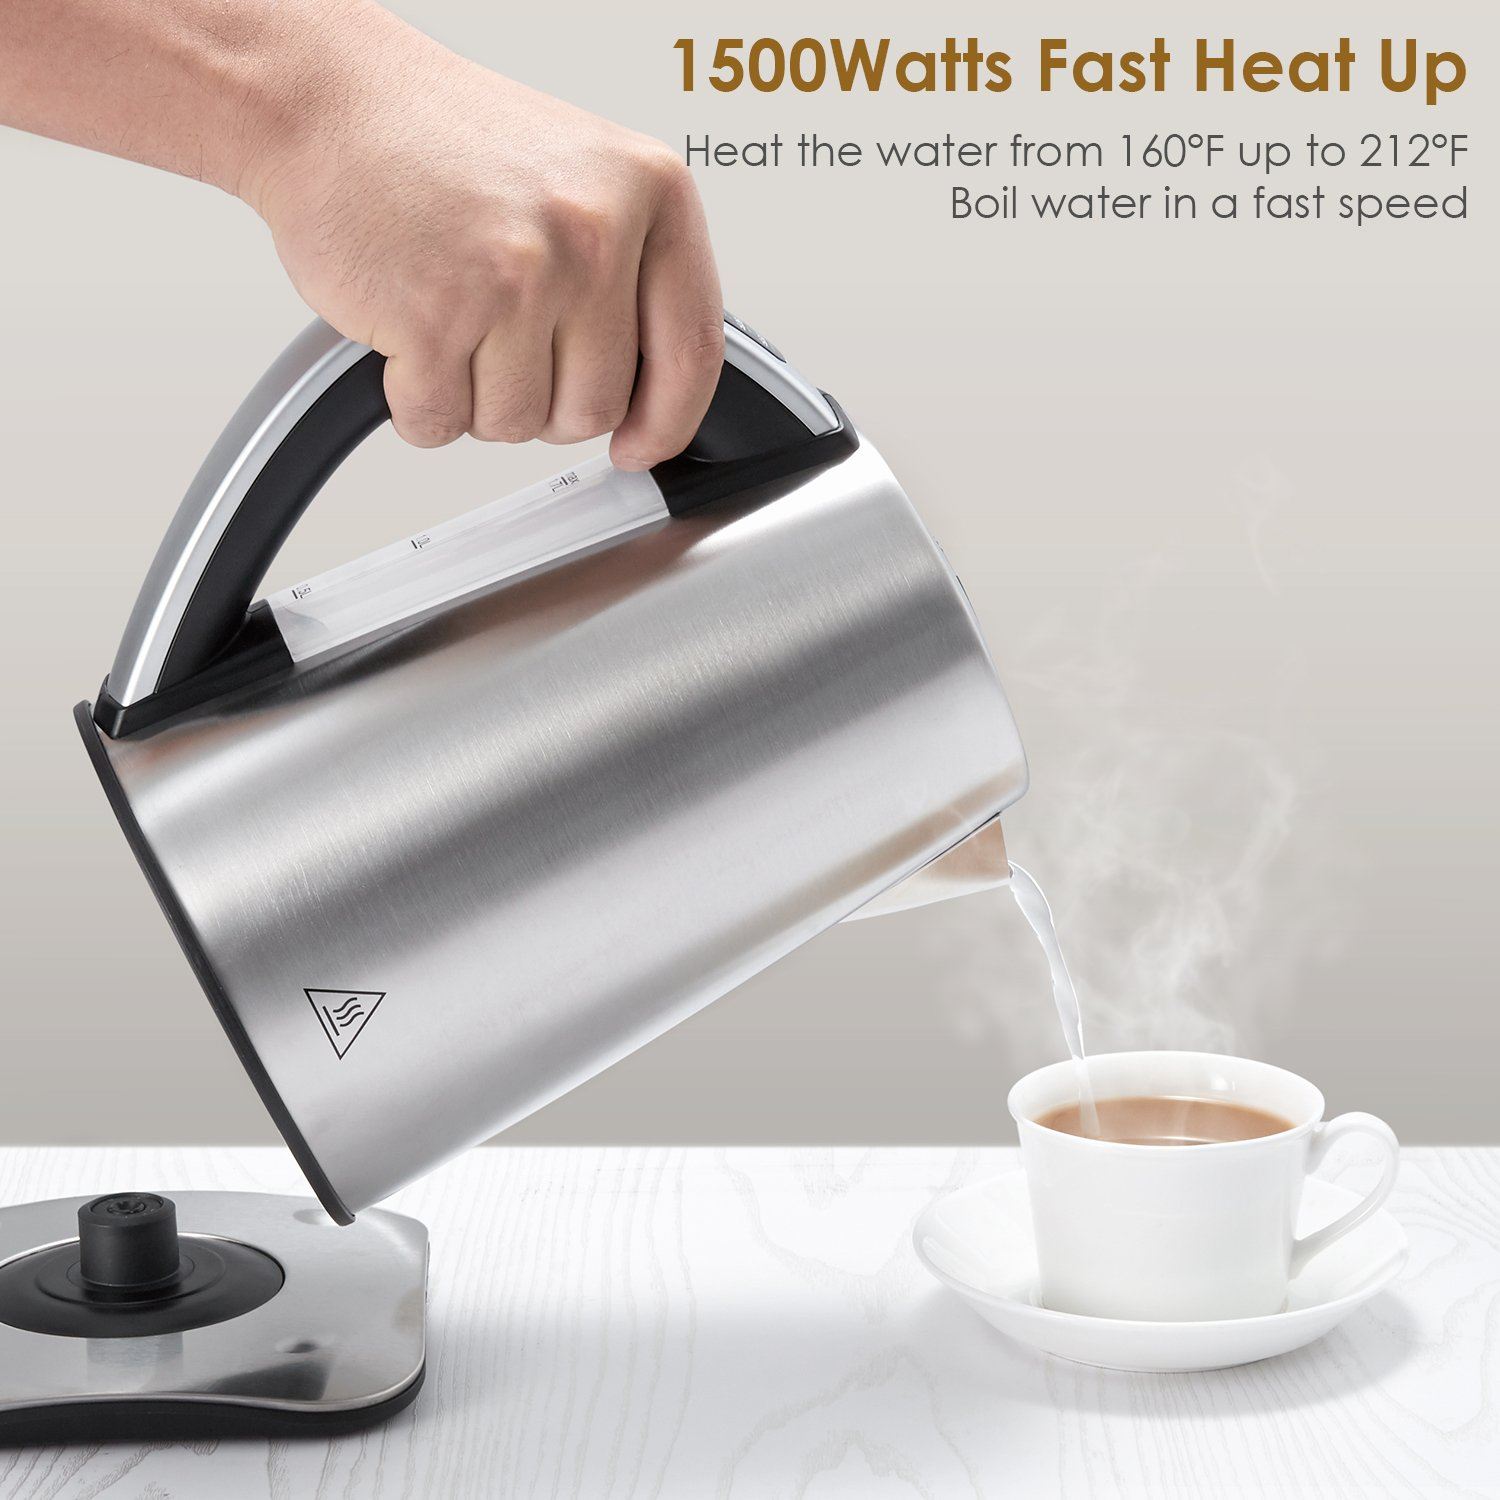 Buy Aicok Electric Kettle Precise Temperature Control Hot Water Wrp On The Go Coffee 200ml Bundle 4 Stainless Steel Tea 17 Liters 1500watt Online At Low Prices In India